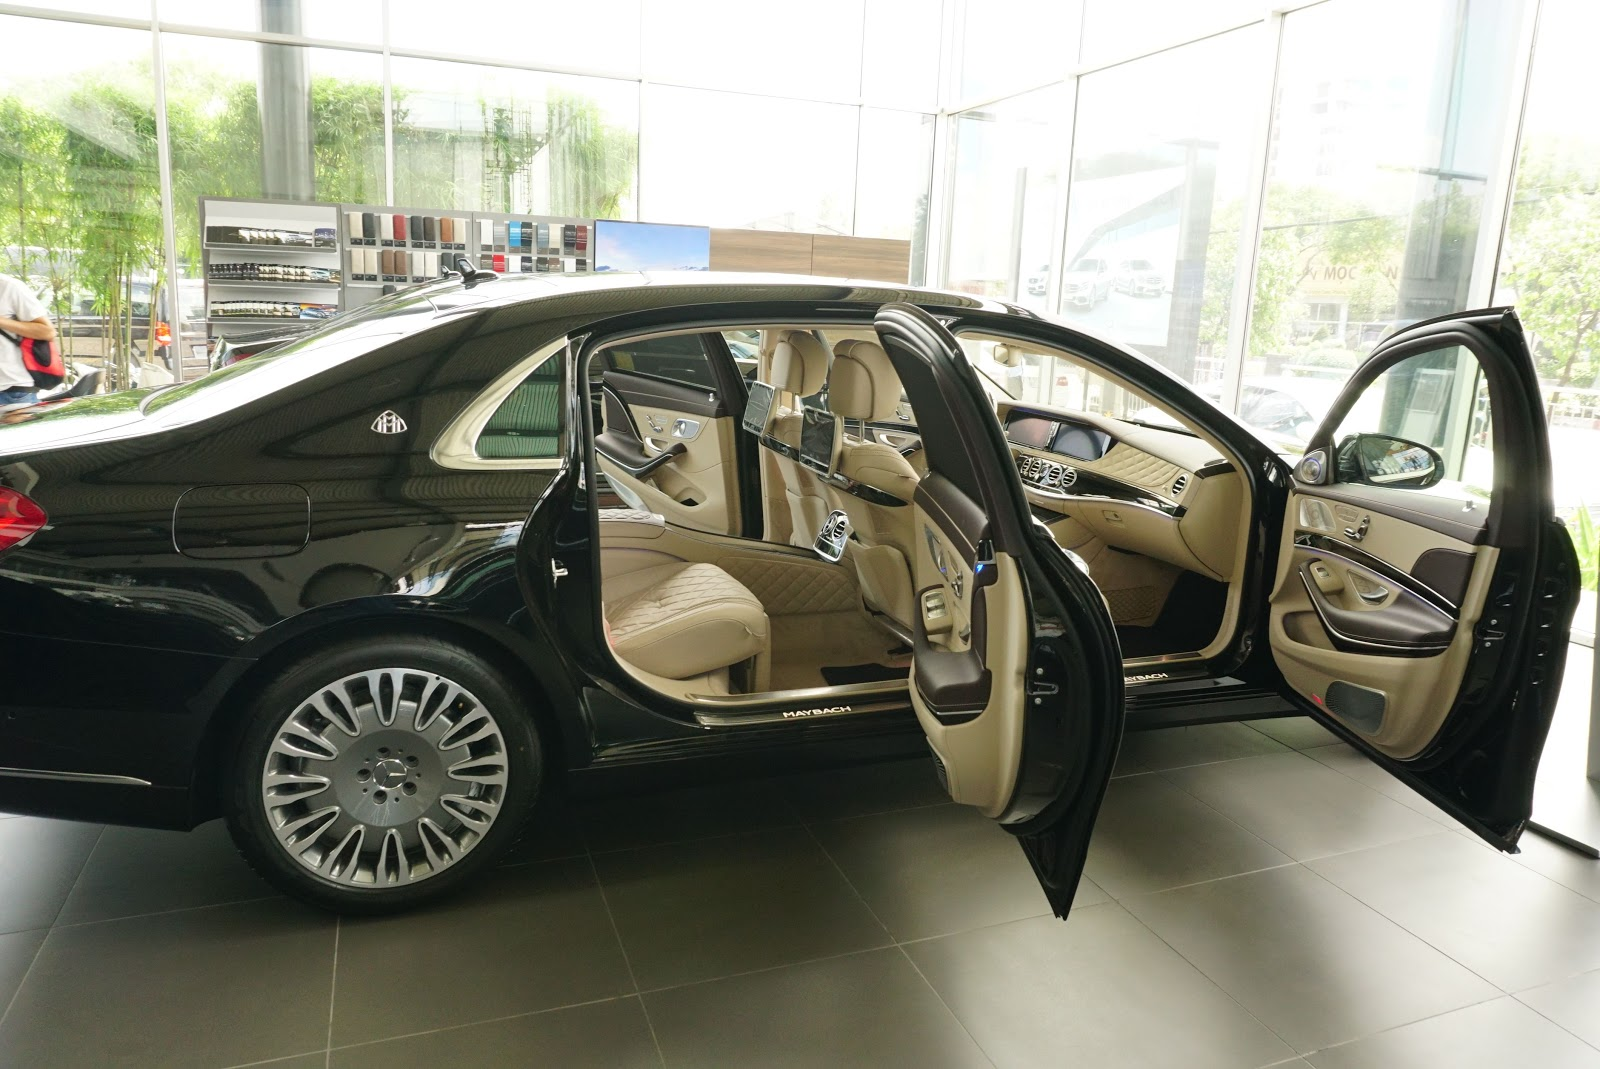 Mercedes Benz S600 Maybach